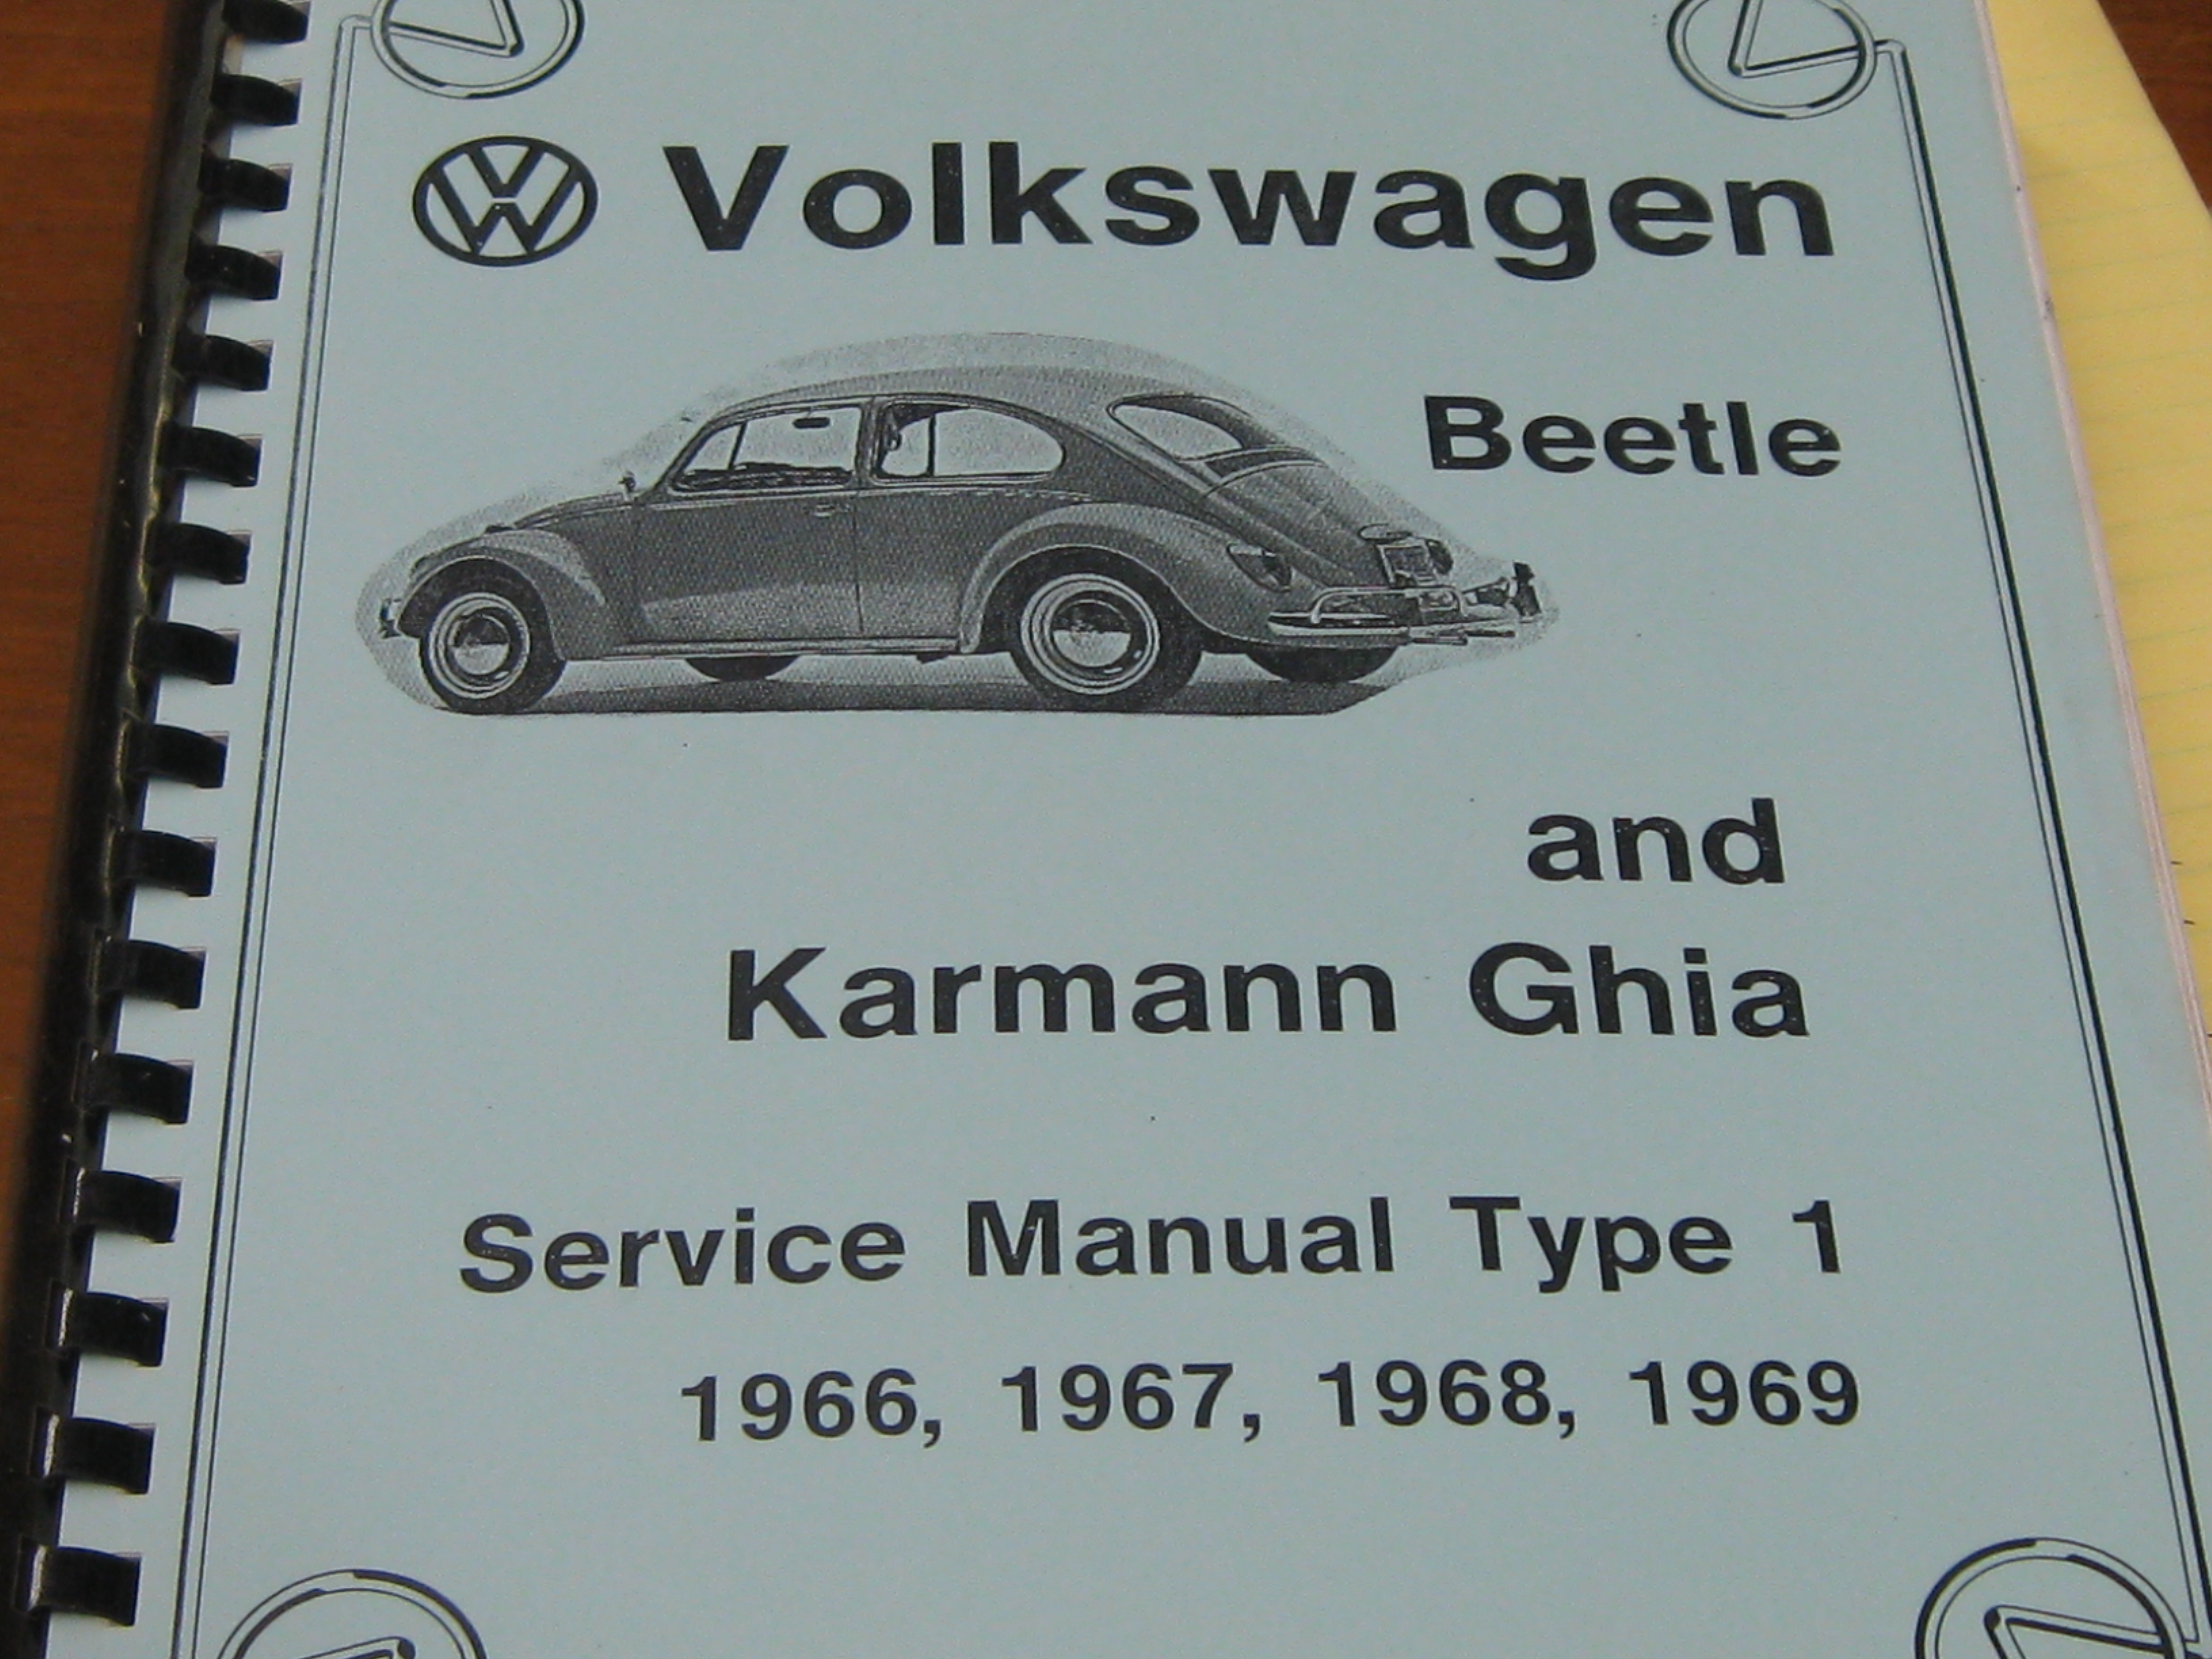 then and now automotive 1966 1969 volkswagen beetle and karmann ghia rh then now auto com VW Routan Service Manuals 1968 VW Transporter